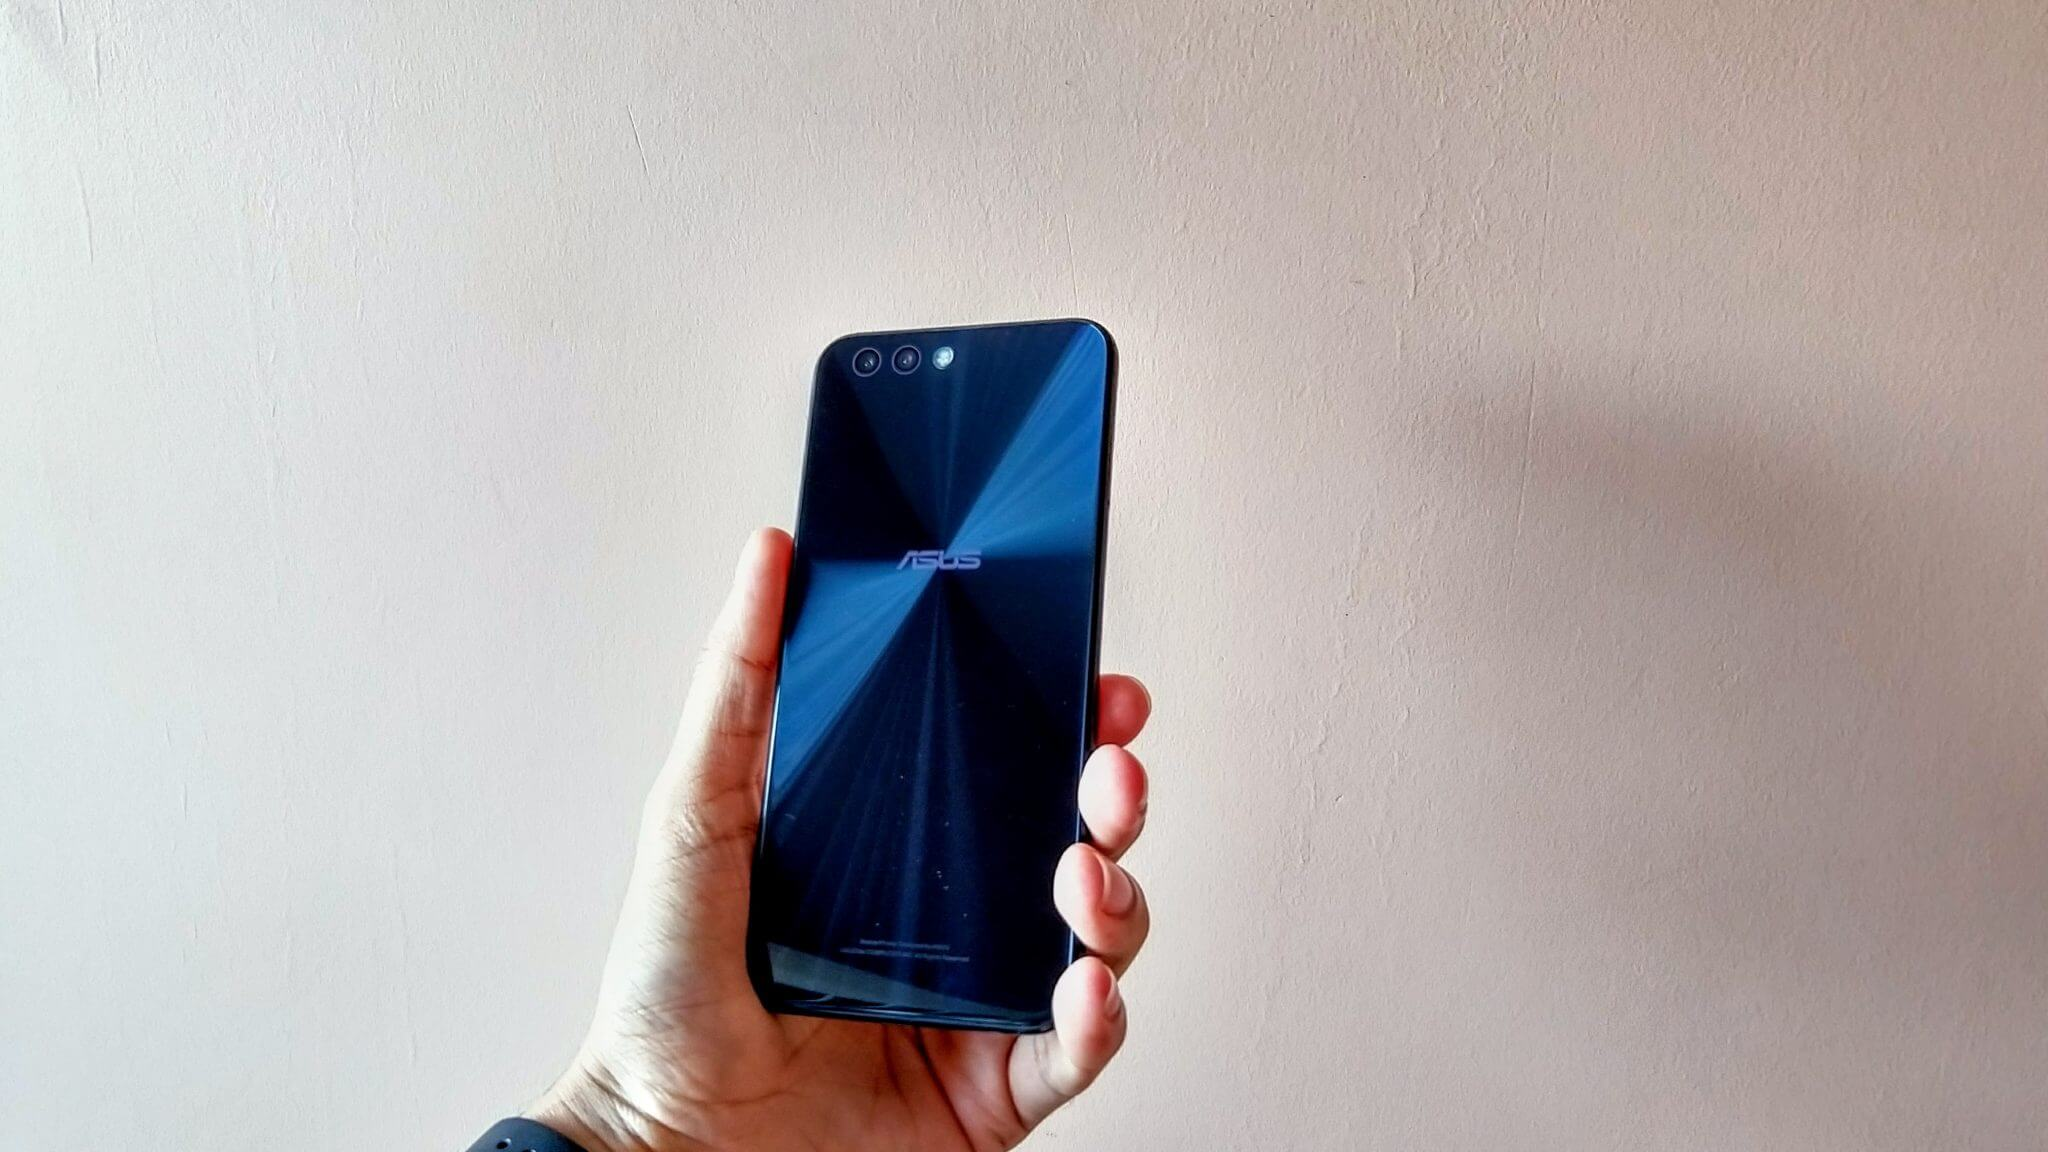 IMG 20171105 162258364 HDR 1 - Review - ASUS Zenfone 4